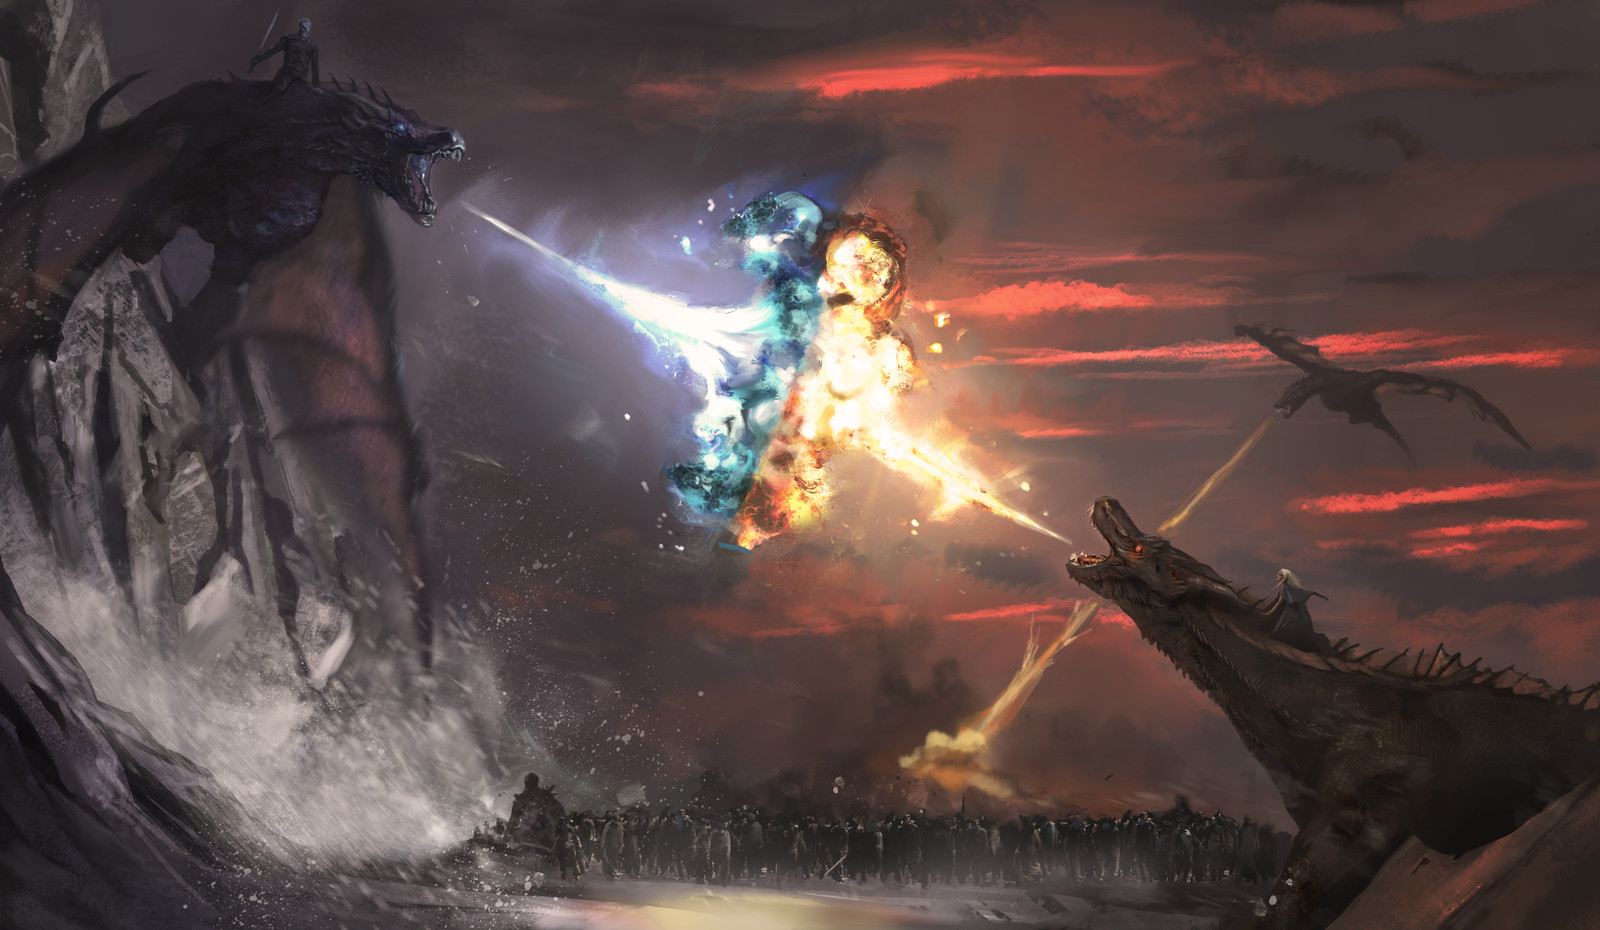 Clash of fire and ice